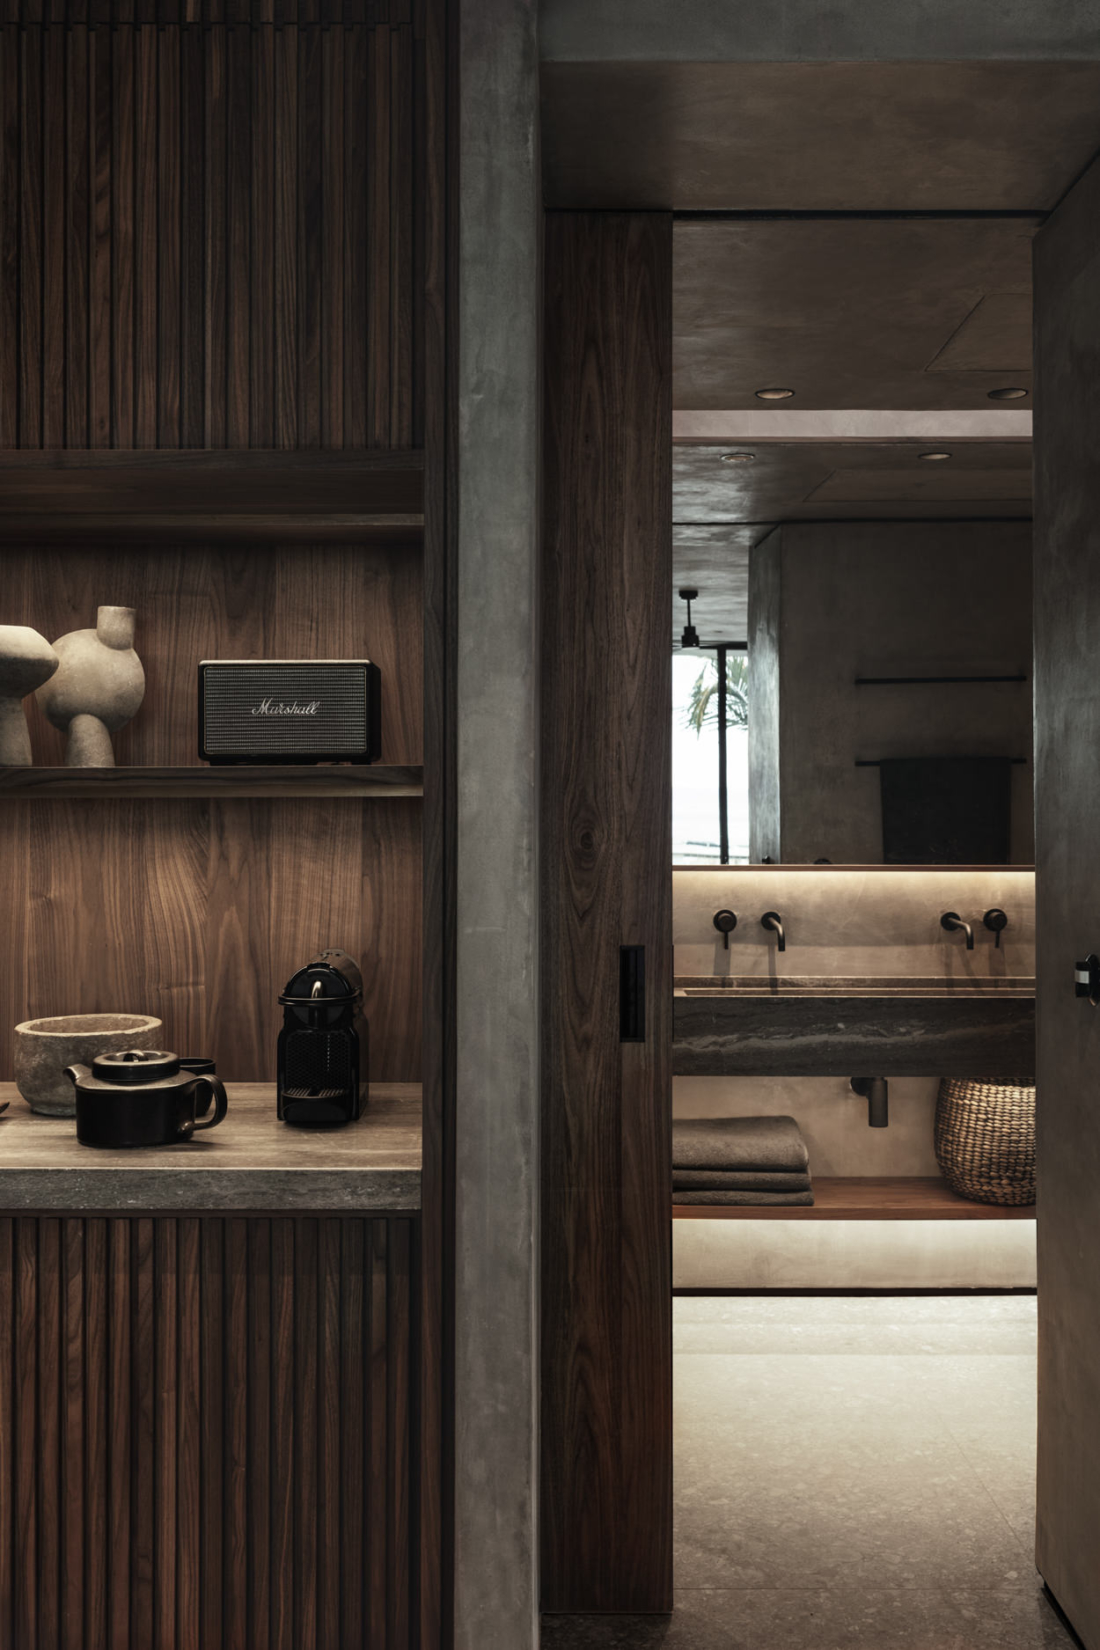 boutique hotel, casa cook, greece, relaxing enviroment, calming retreat, wellness space, hotel interior design, earthy tones